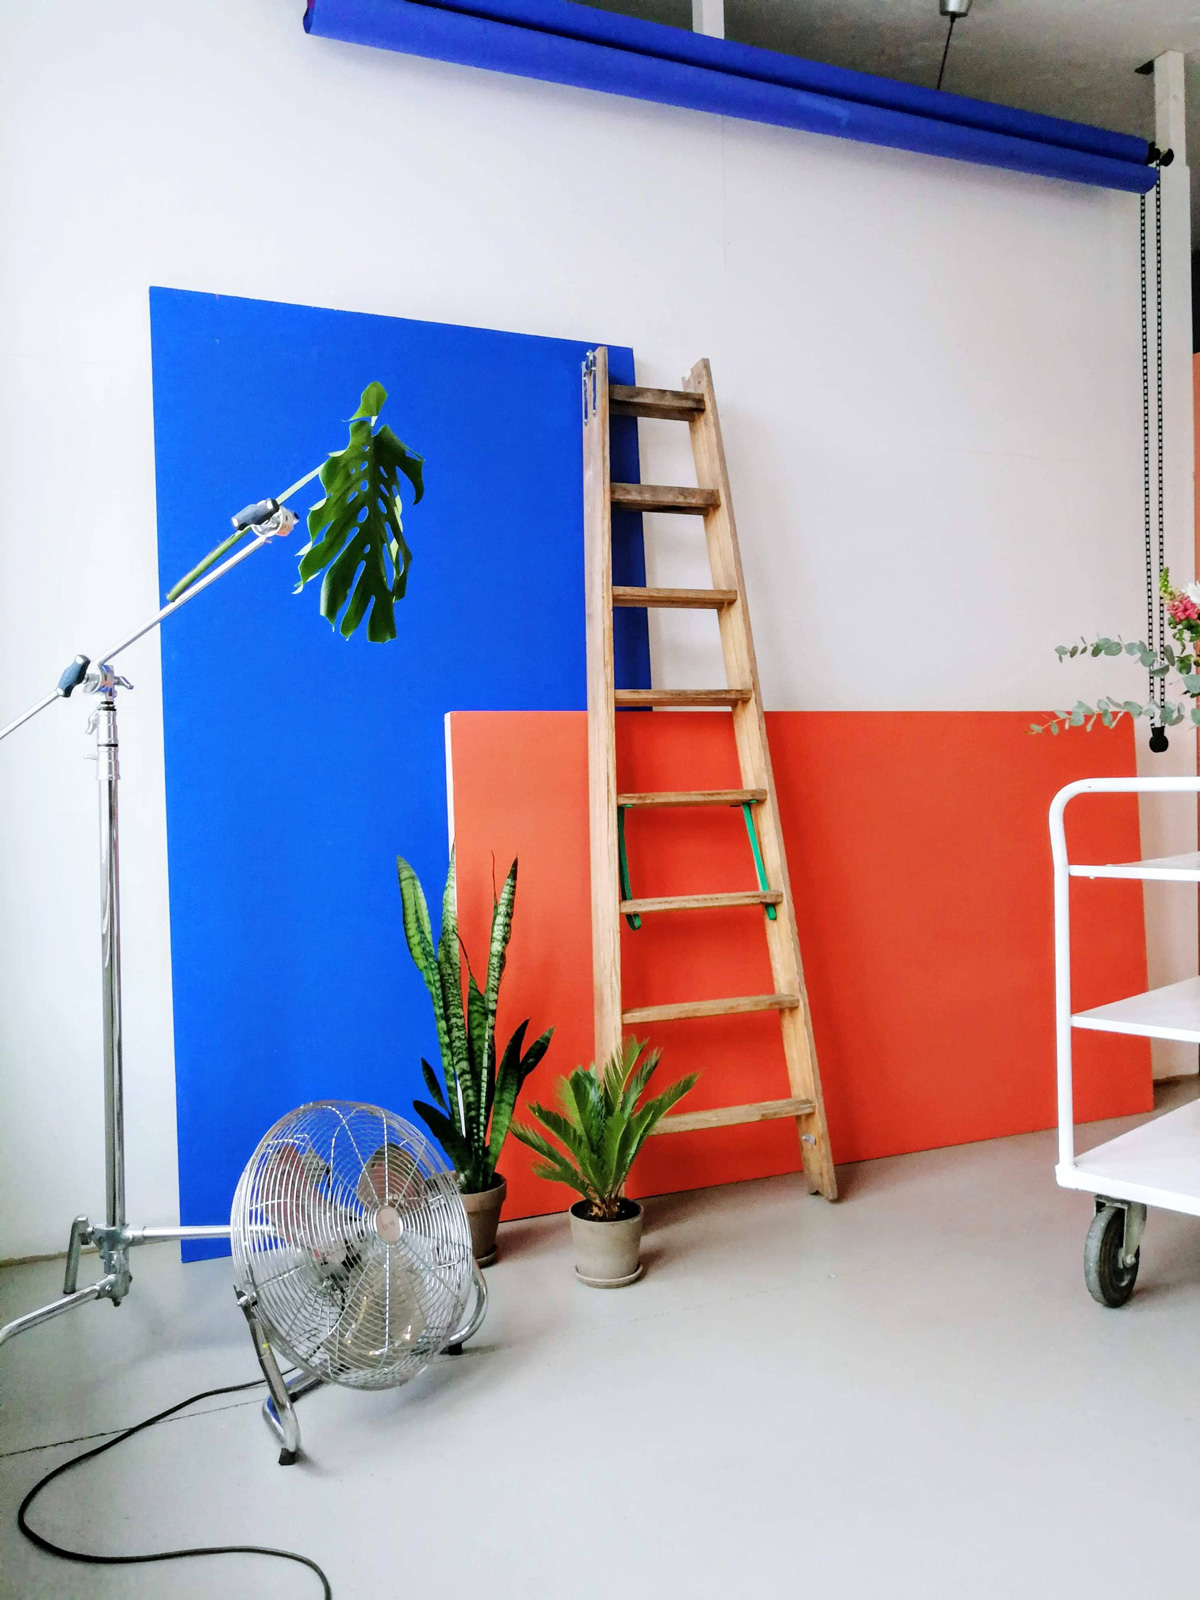 Ikonic photostudio rental and eventlocation in berlin with many props